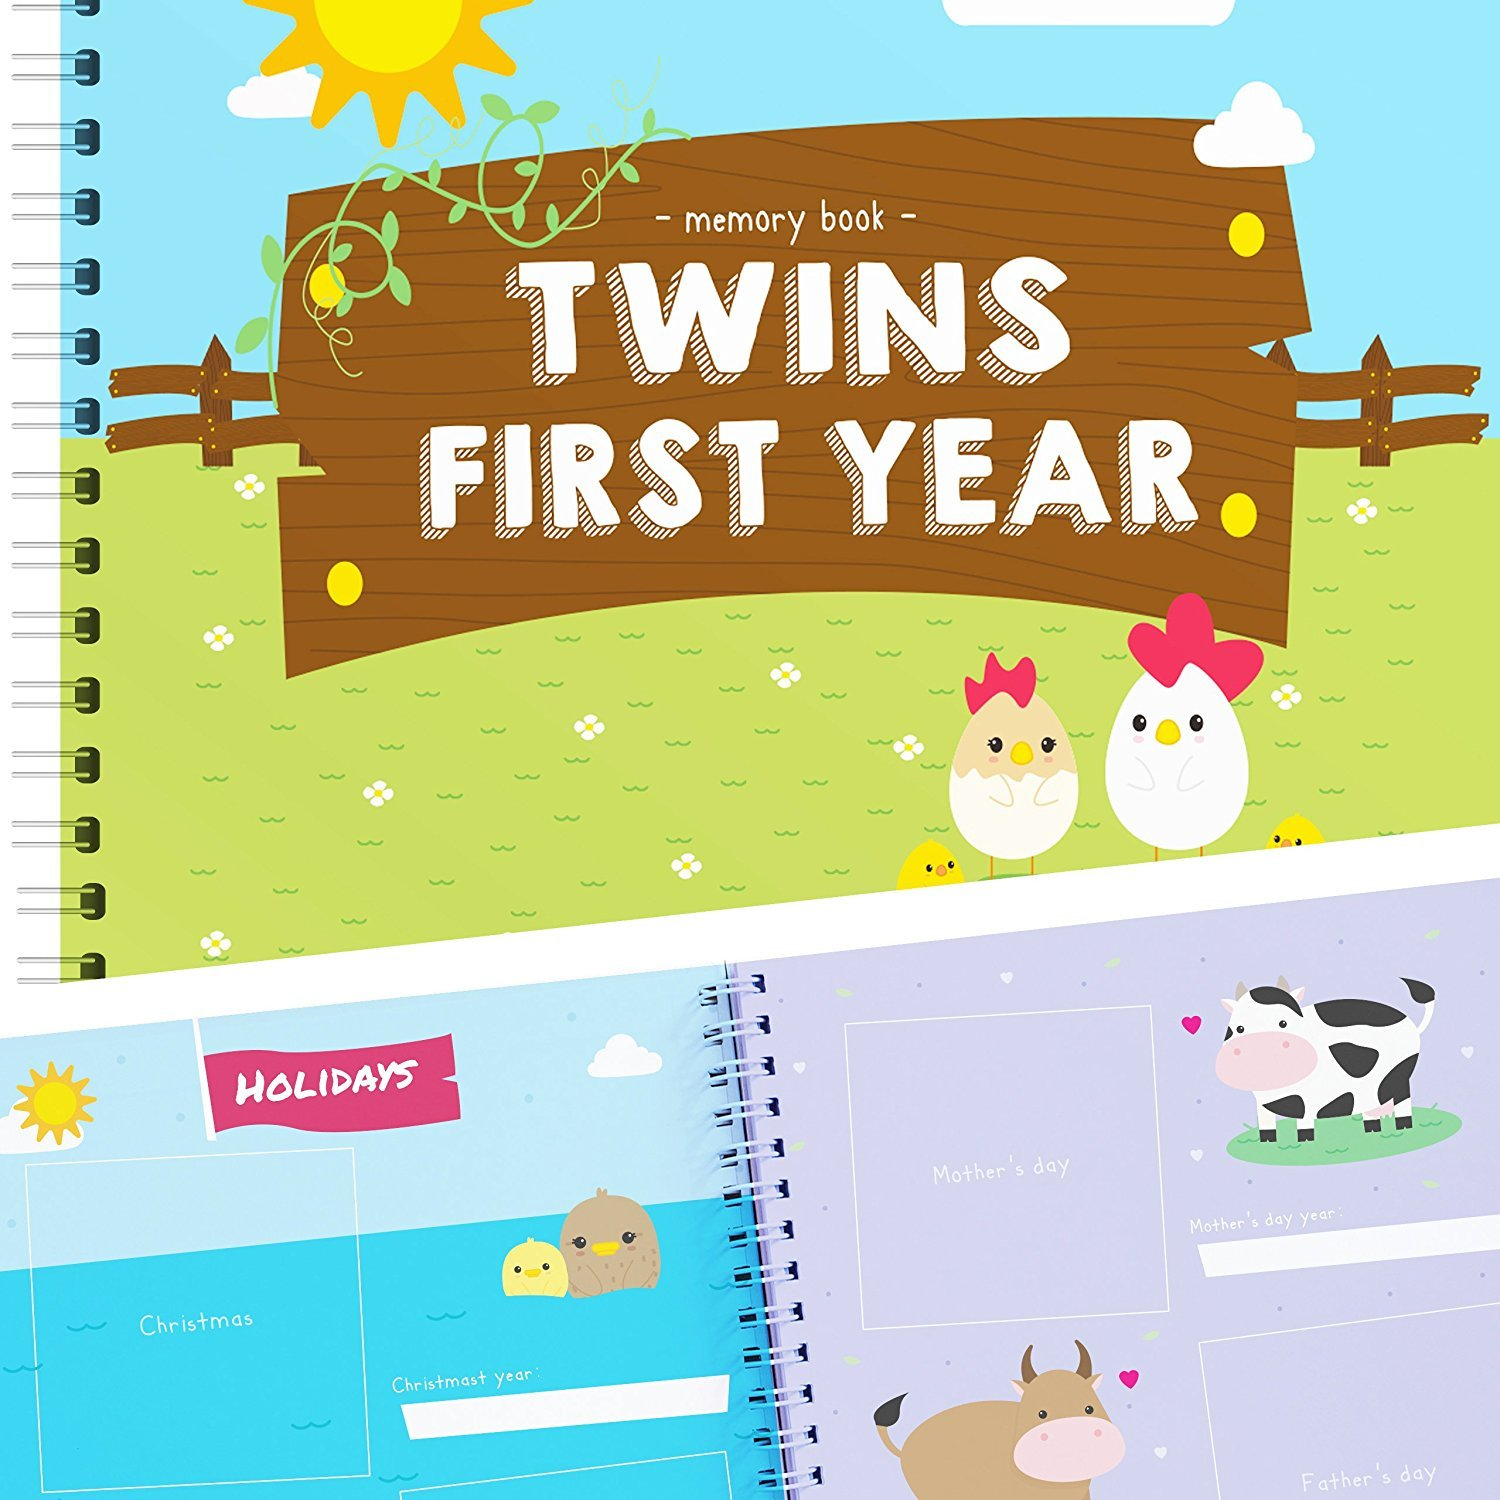 Unconditional Rosie Twins First Year Memory Book - A Gorgeous Baby Keepsake Journal to Cherish Your Twin's First Year Forever! Includes Stickers Family Tree Holidays Letters from Mom & Dad and Much More! TWINFARM1